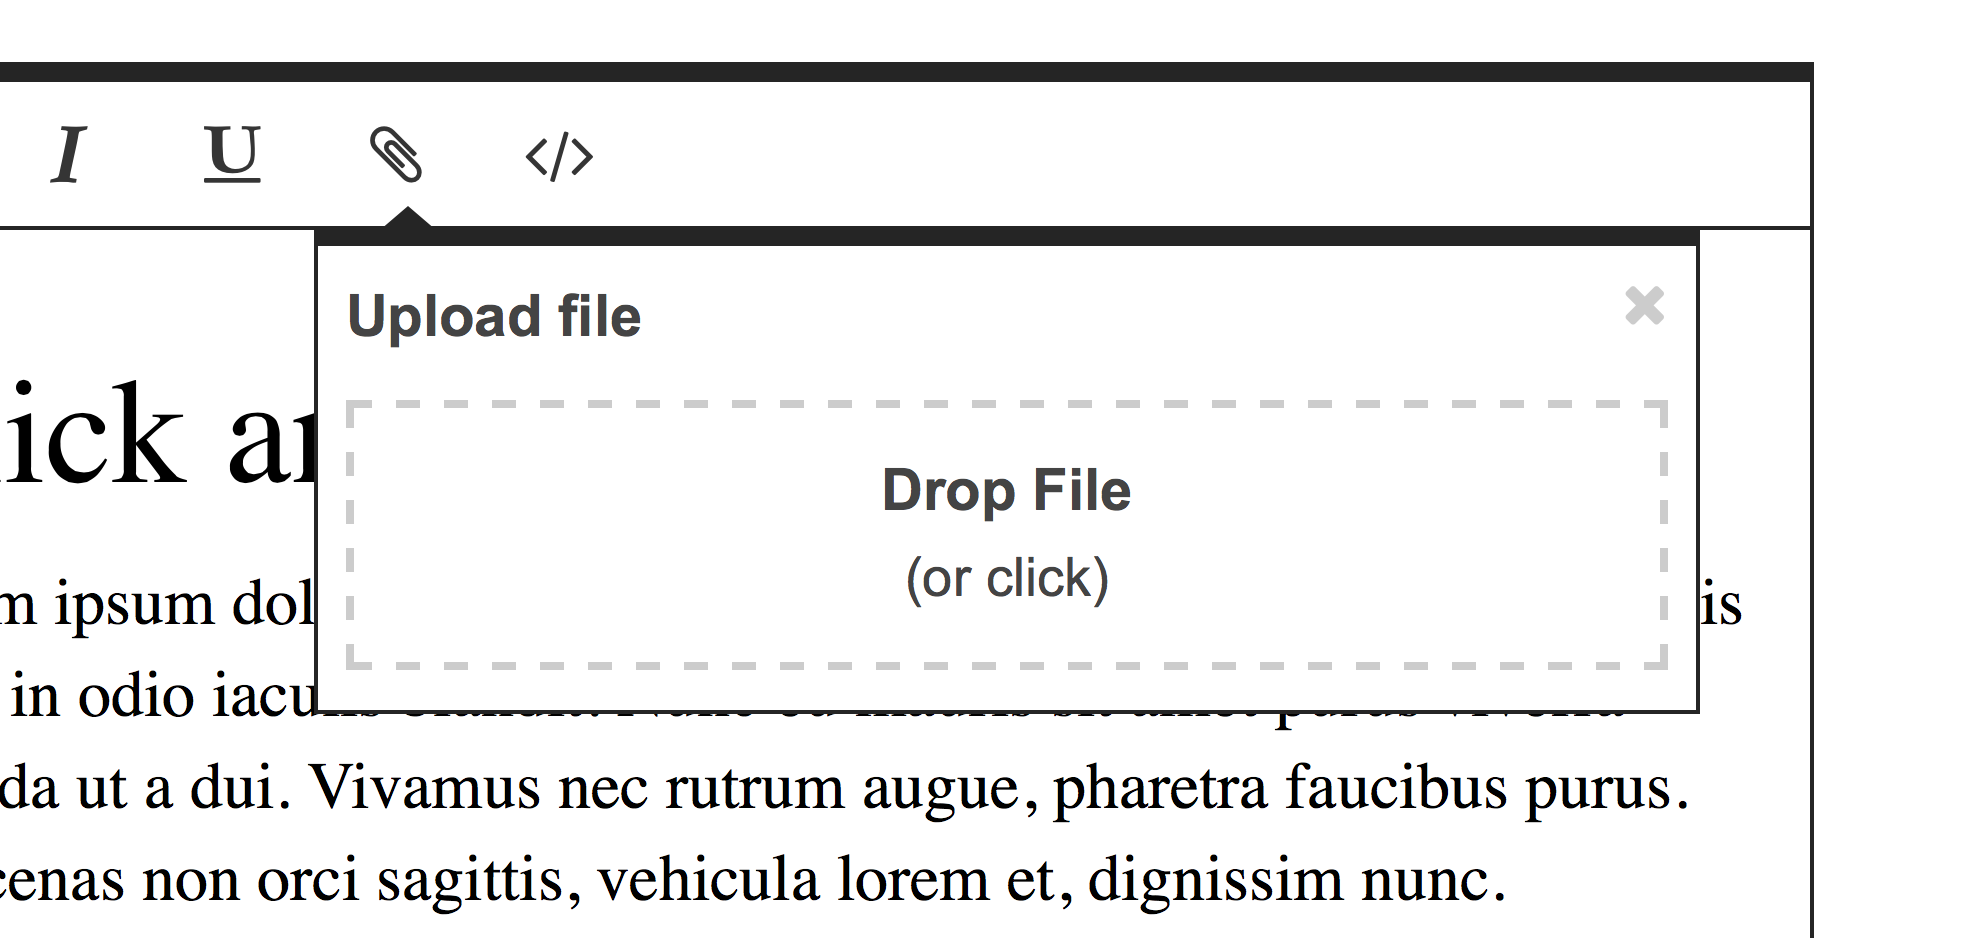 Don't forget to upgrade Froala WYSIWYG Editor to version 1 2